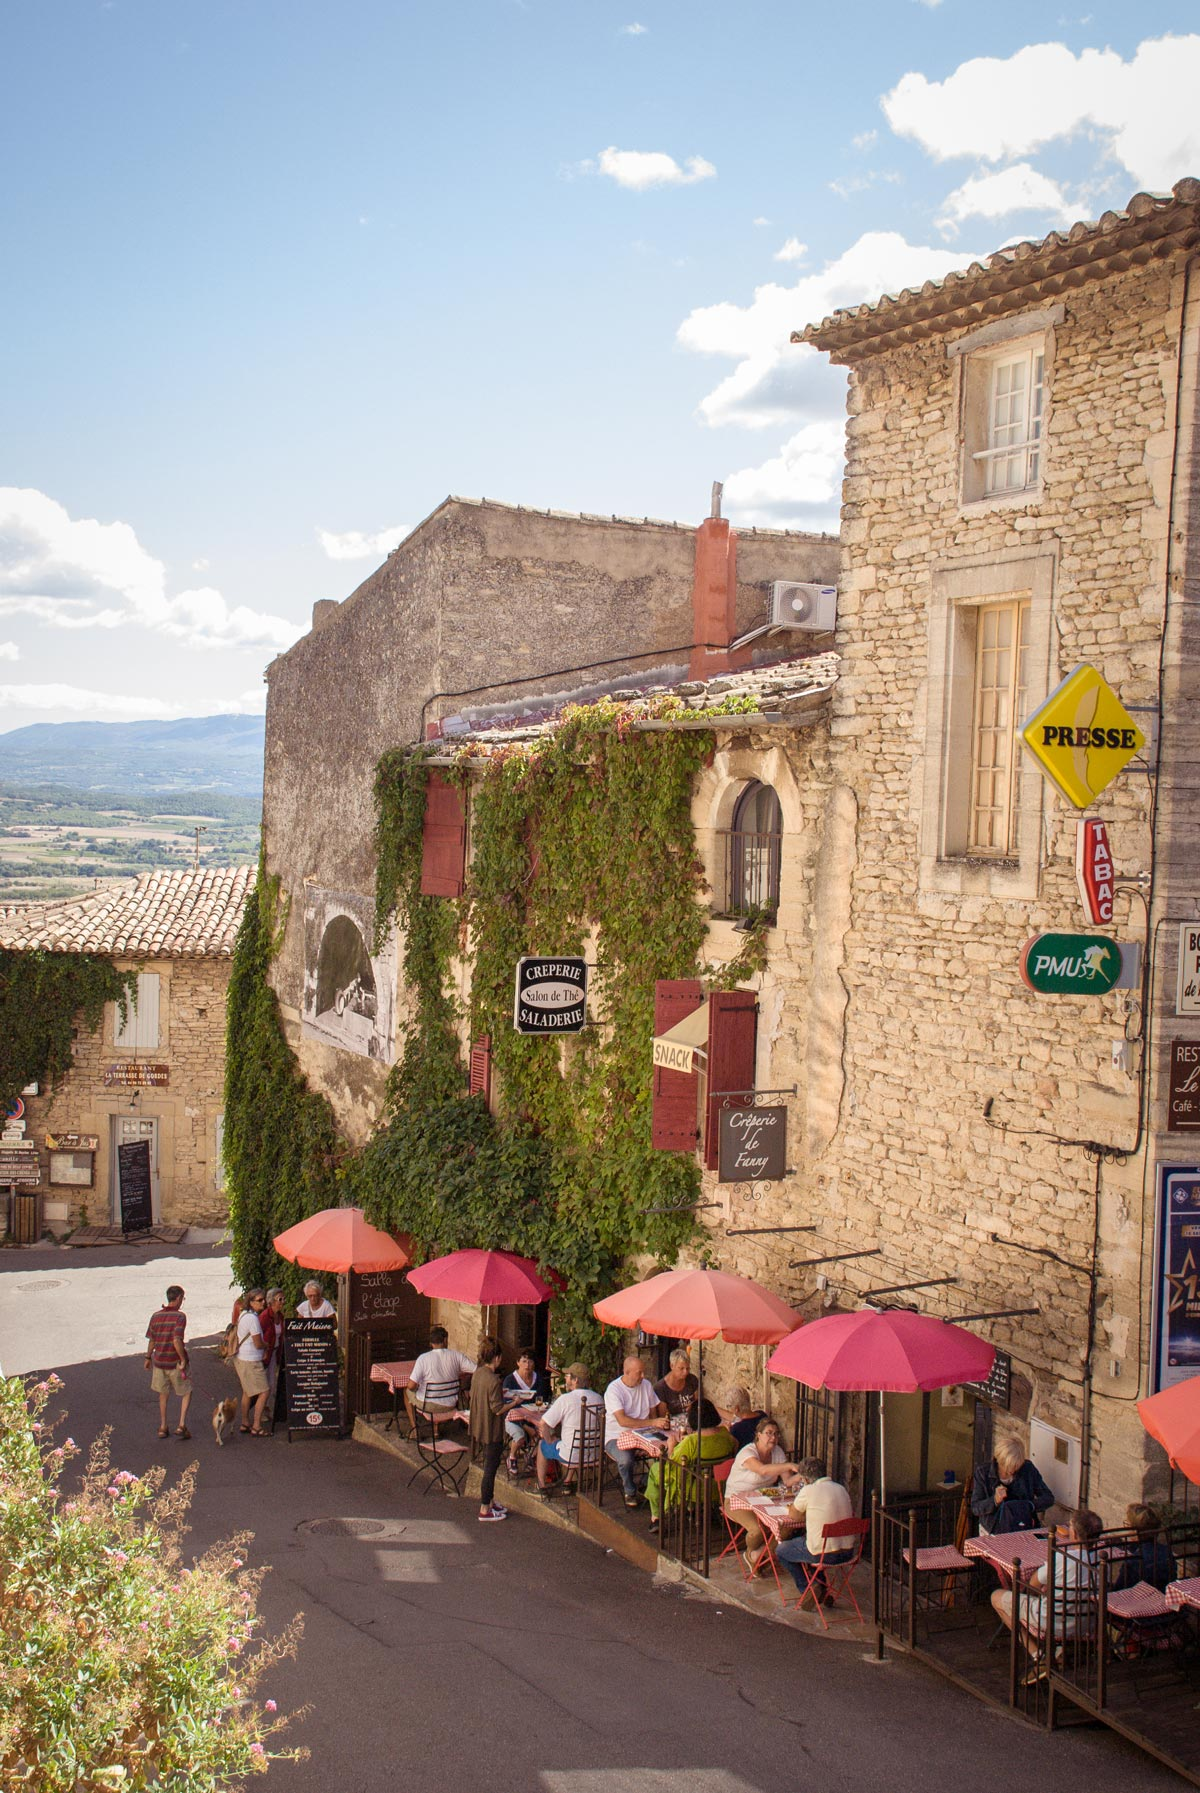 Provence-Villages-South-of-France.-Provence-Luberon.-Gordes-cafes.-Eating-in-Gordes